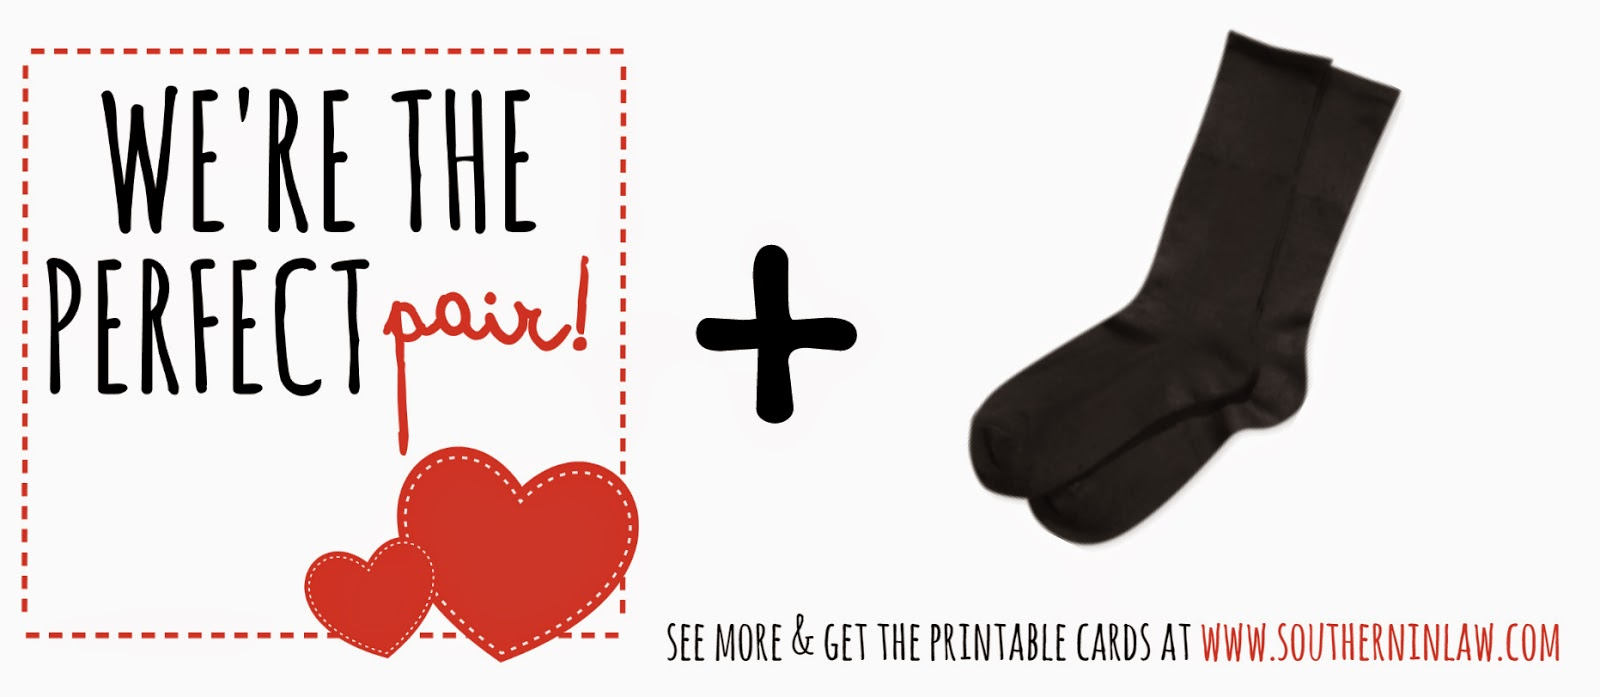 We're the perfect pair - Socks Valentines Gift Idea - Punny Valentines Gift Ideas Free Printable Valentines Cards